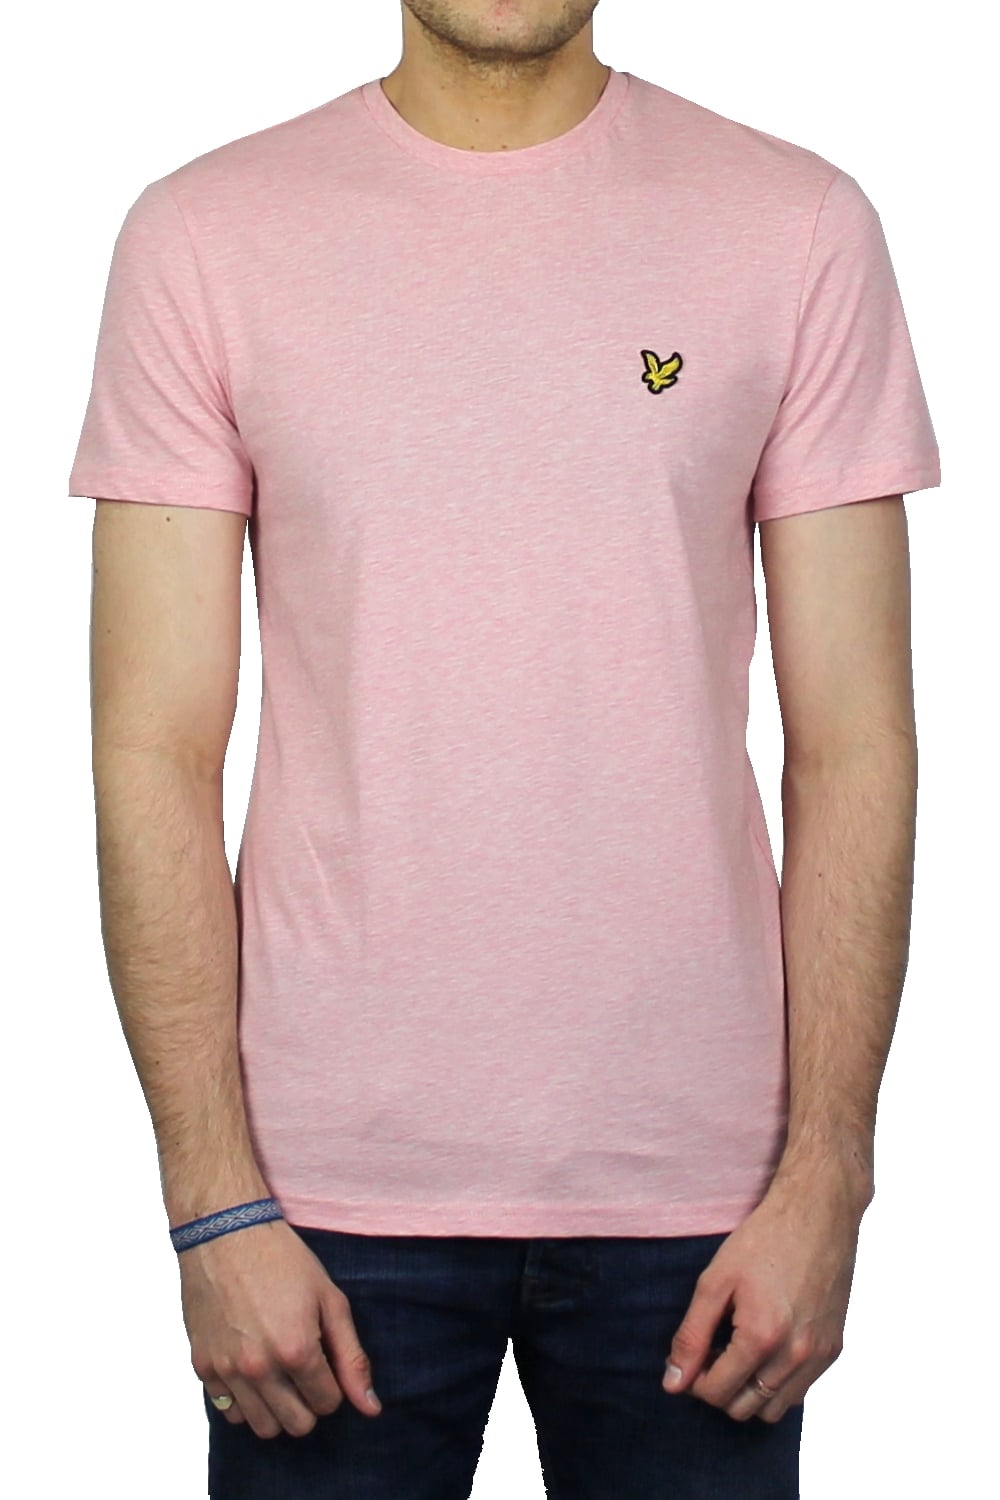 Lyle & Scott Short-Sleeved Crew Neck T-Shirt (Soft Pink) | ThirtySix